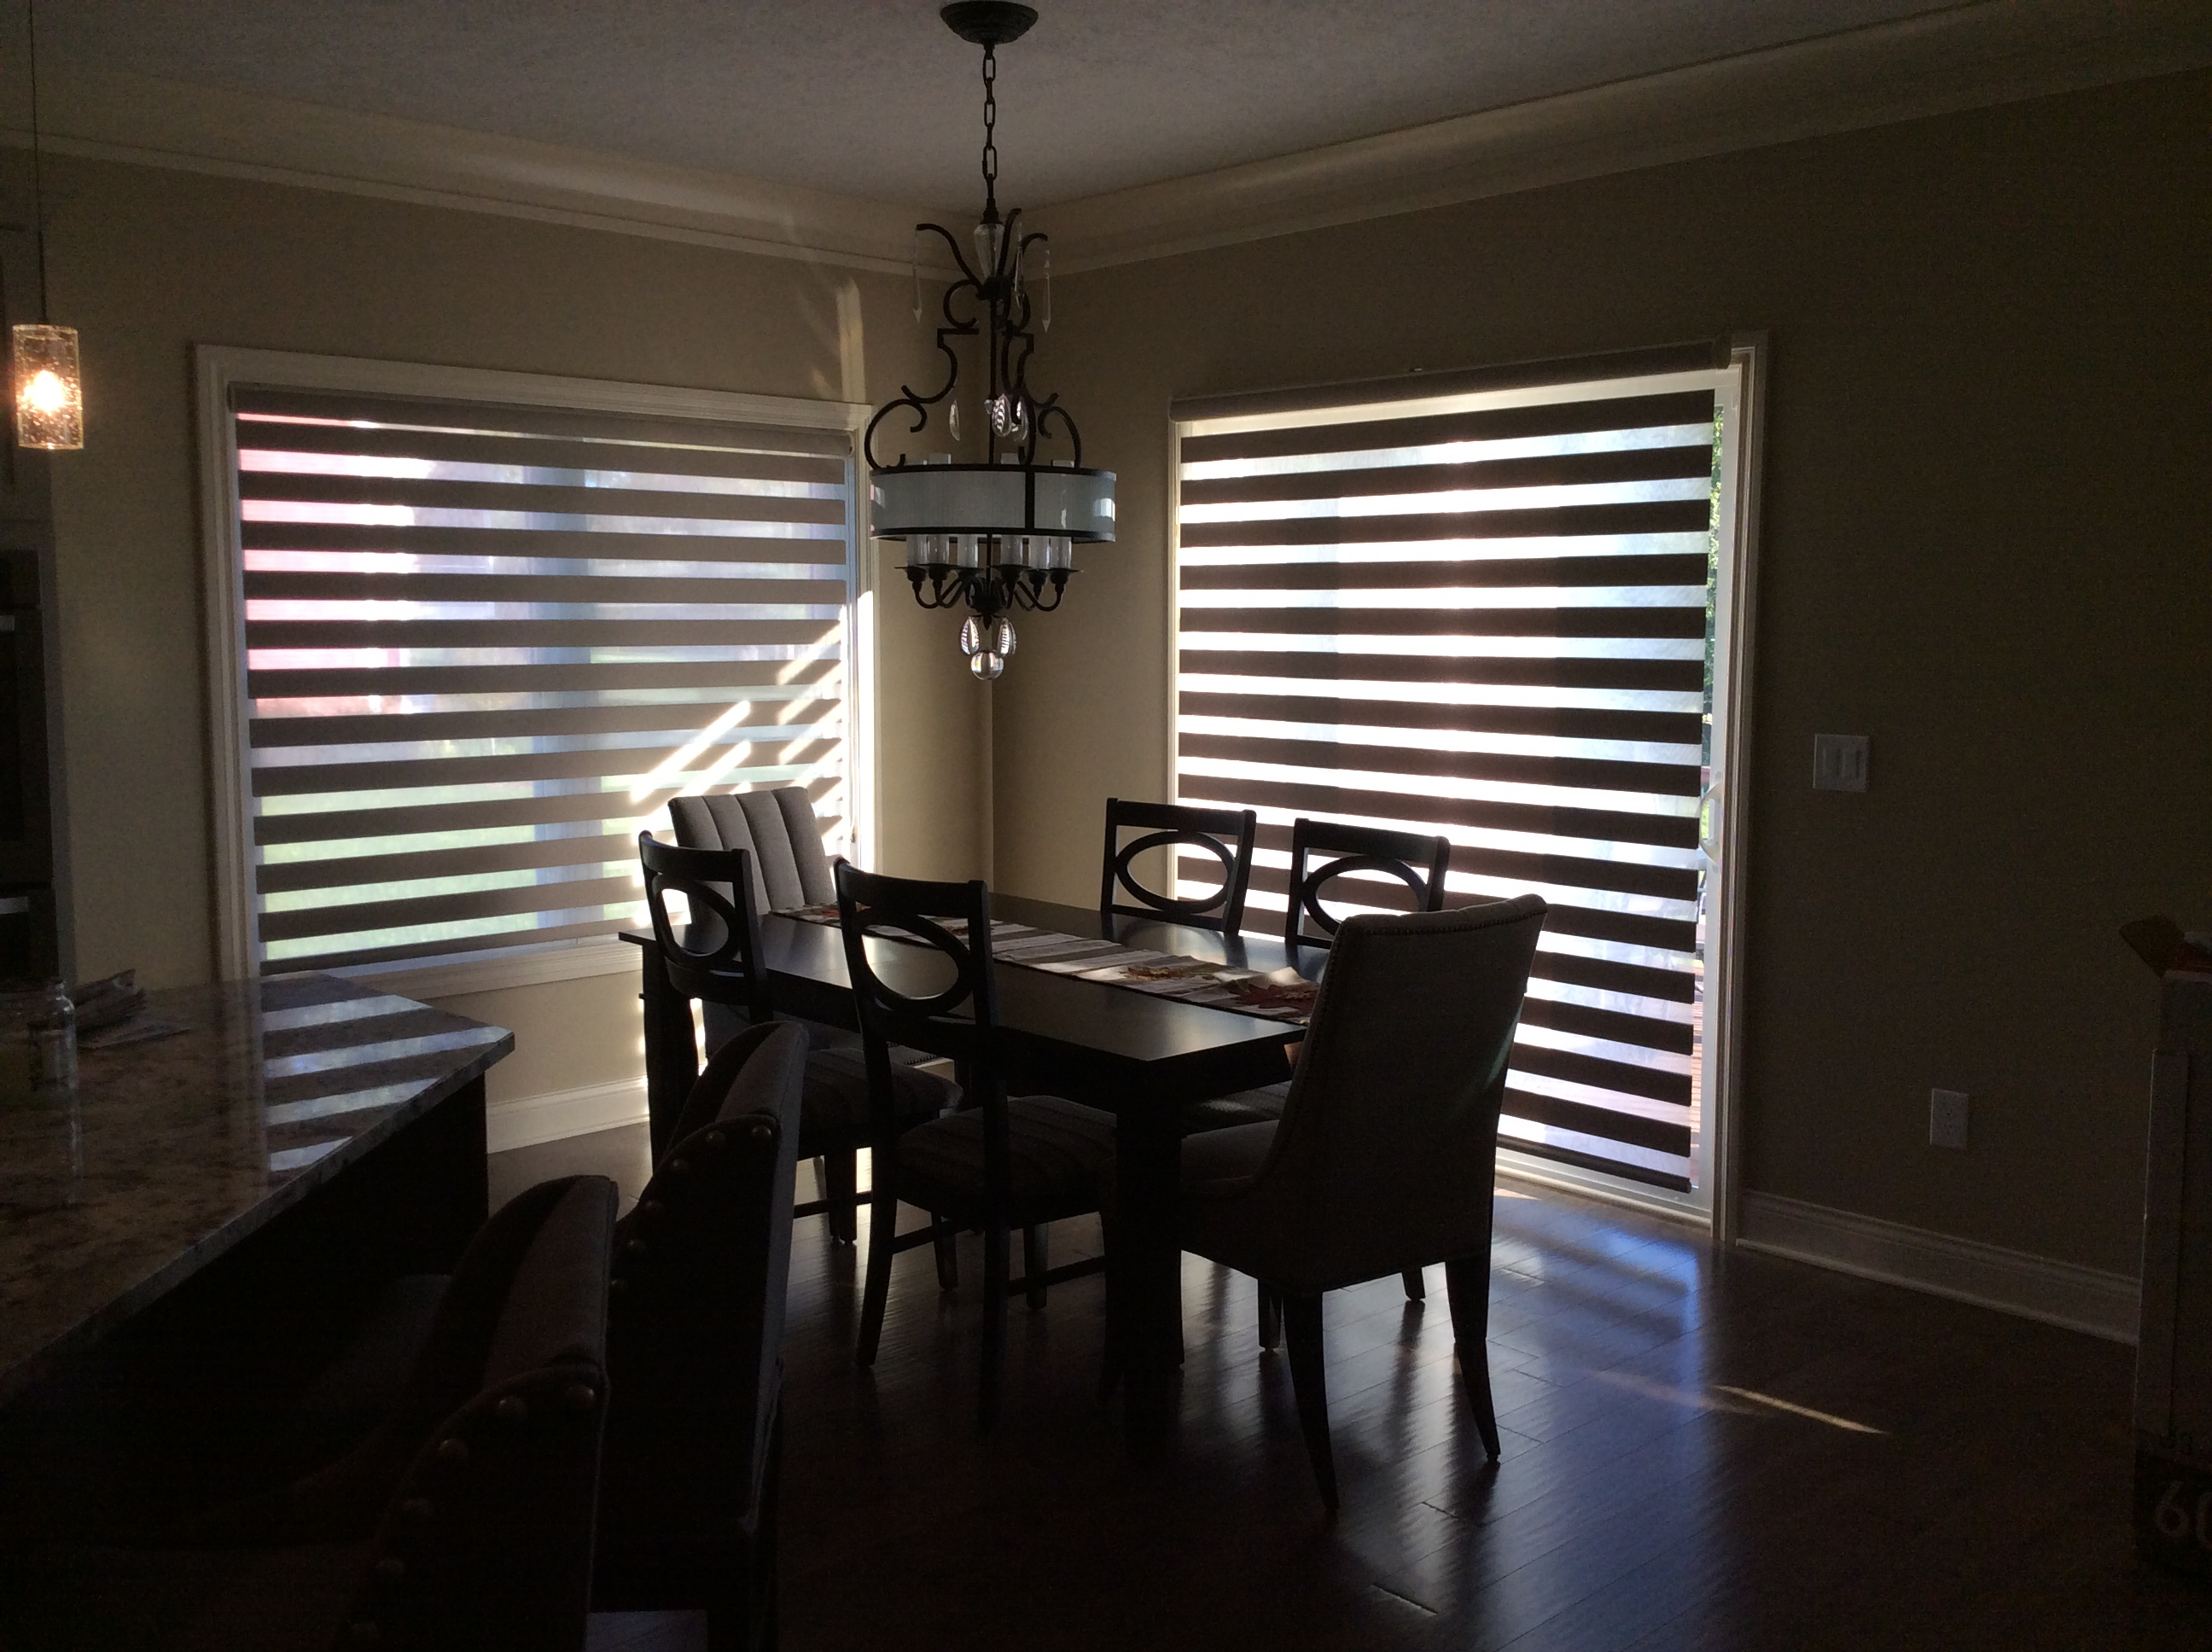 window blinds and shades will complement our window treatment services by allowing us to completely transform any window whether you are in search of